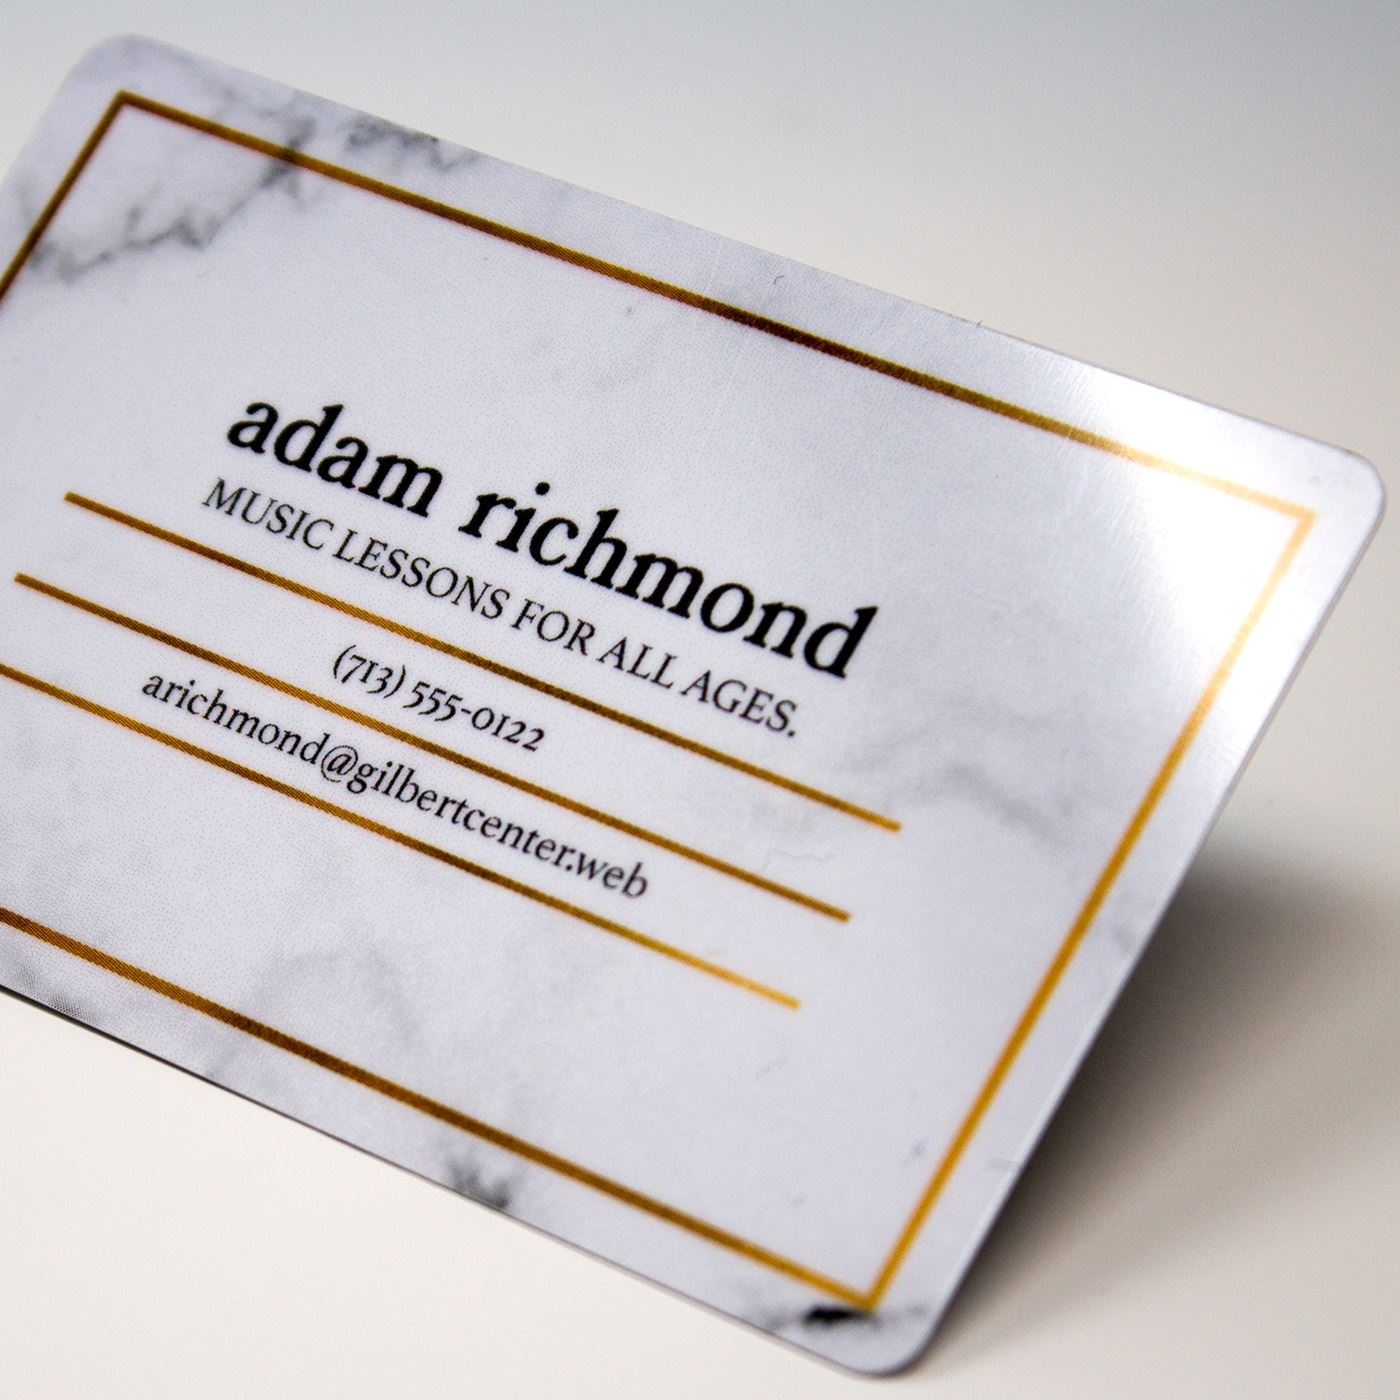 plastic business cards - Www Vistaprint Com Business Cards